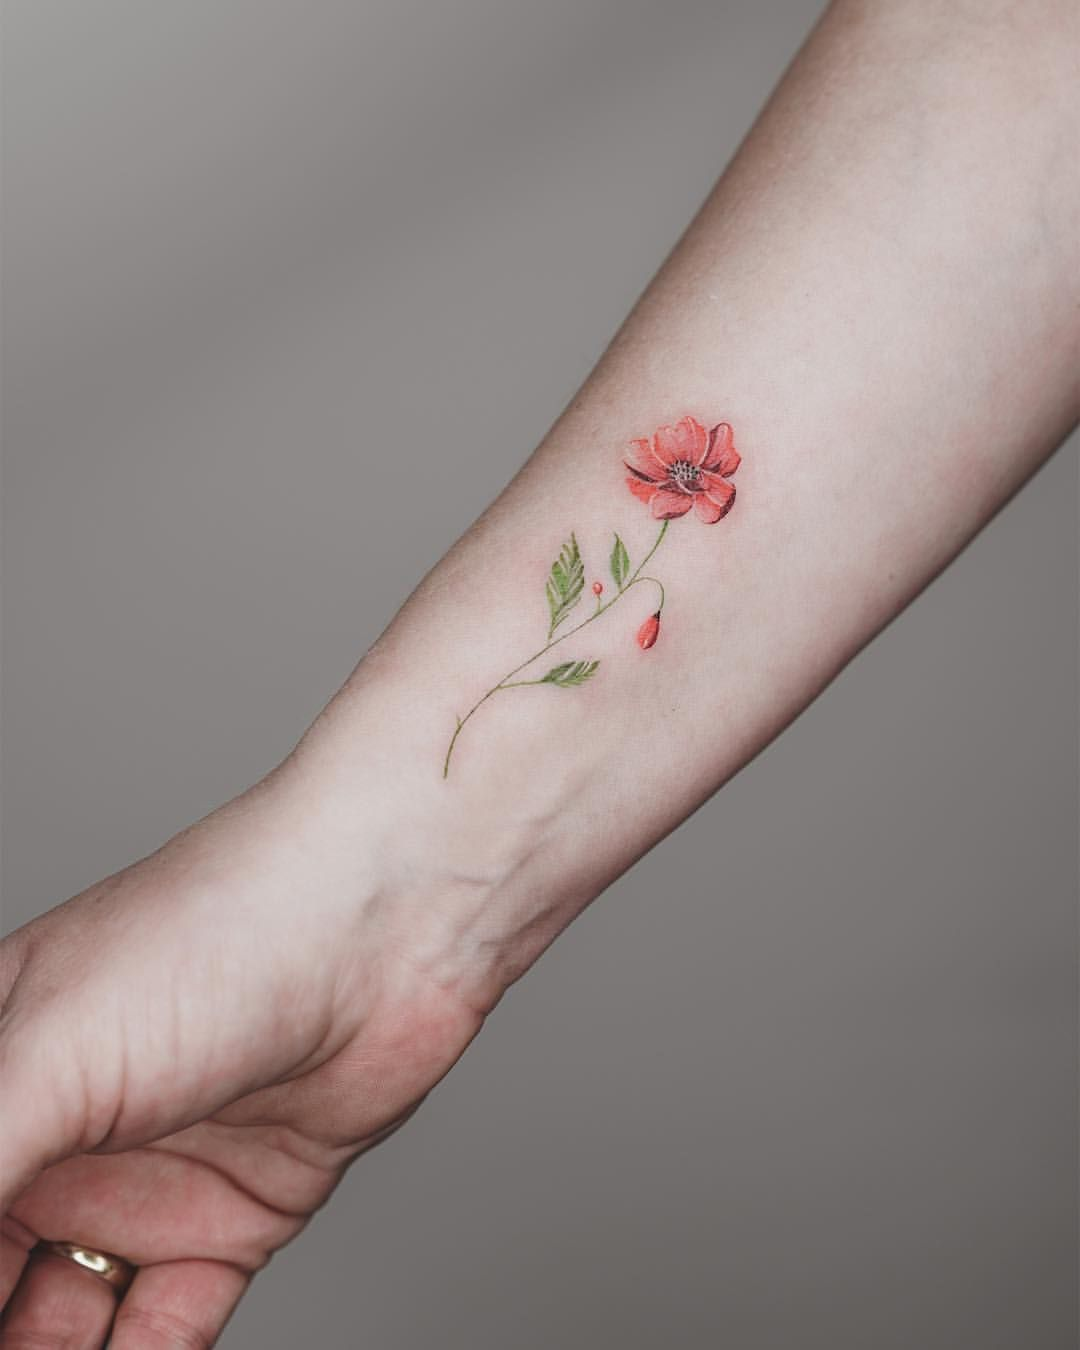 Pin By Claudia Pires On Tattoos I Admire Ideas In 2020 Poppies Tattoo Watercolor Poppy Tattoo Red Poppy Tattoo